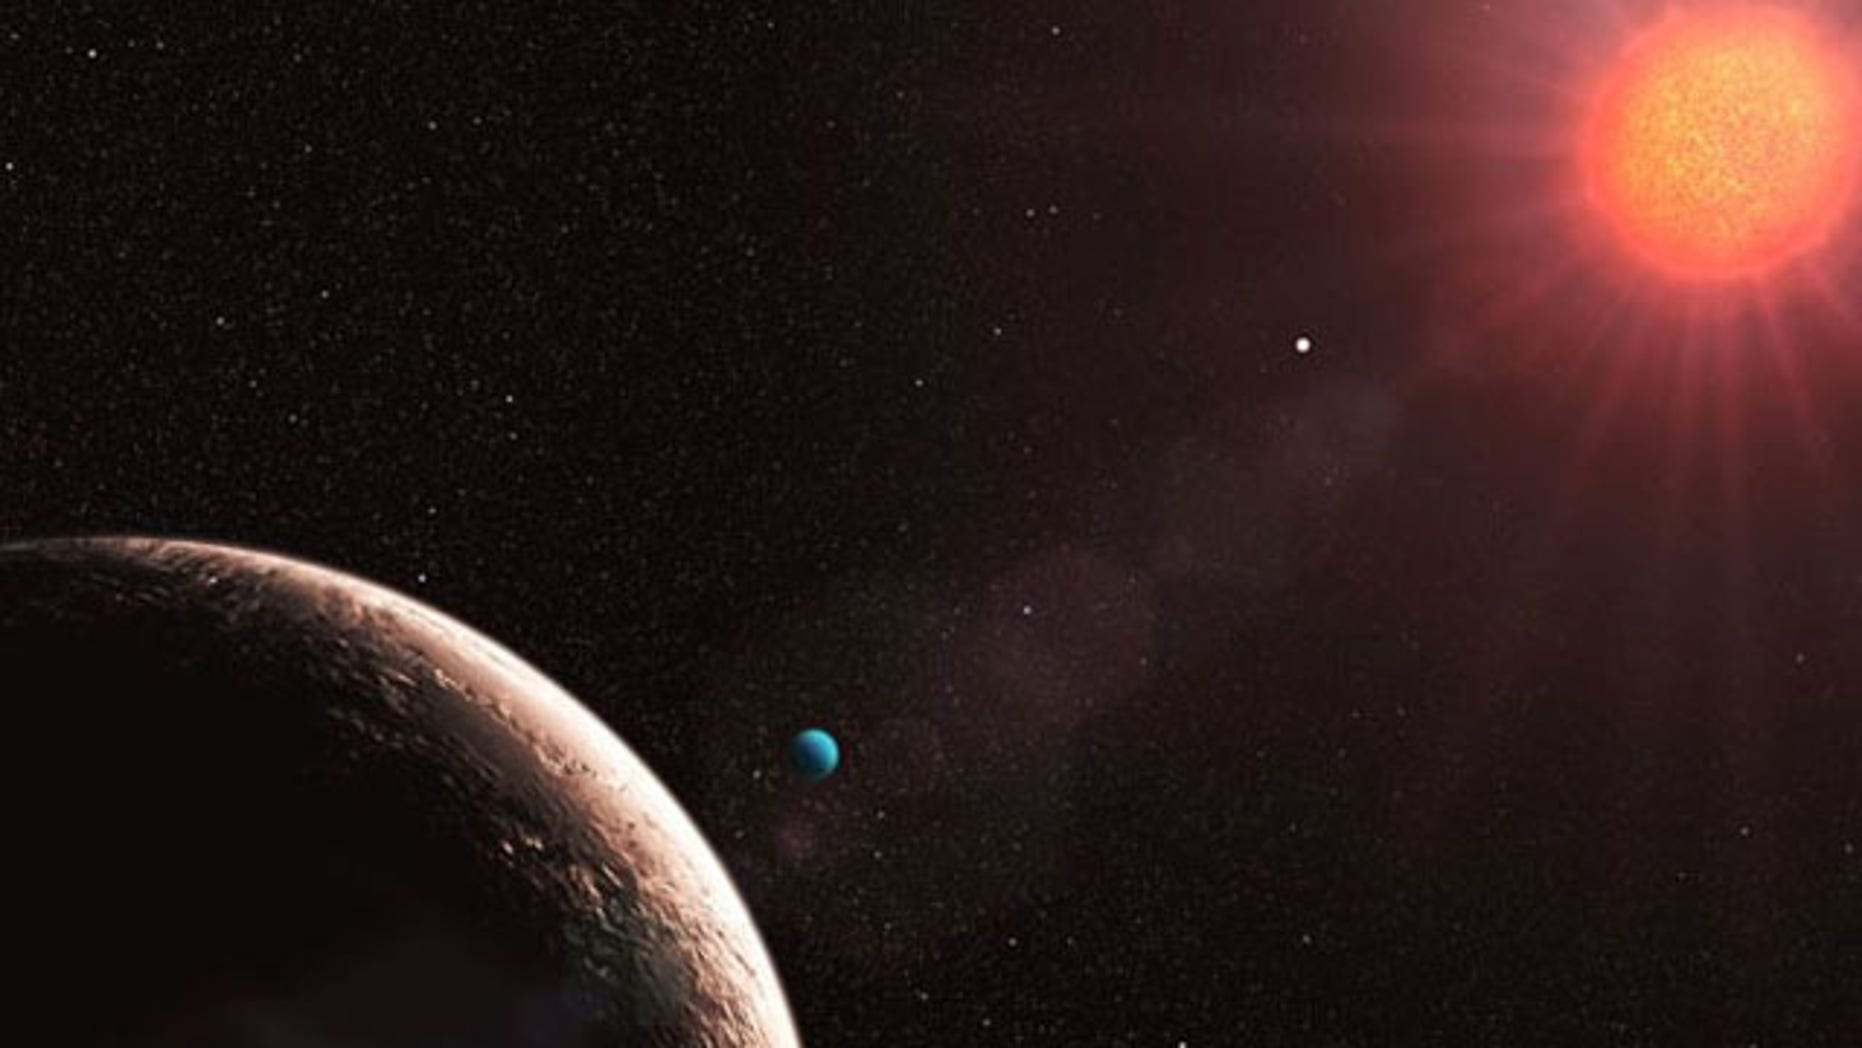 Astronomers have discovered many planets orbiting the star Gliese 581. This artist's representation shows Gliese 581e (foreground), which is only about twice the mass of our Earth. Other confirmed planets in the system are 16 (planet b, nearest to the star), 5 (planet c, center), and 7 Earth-masses (planet d, with the bluish color).